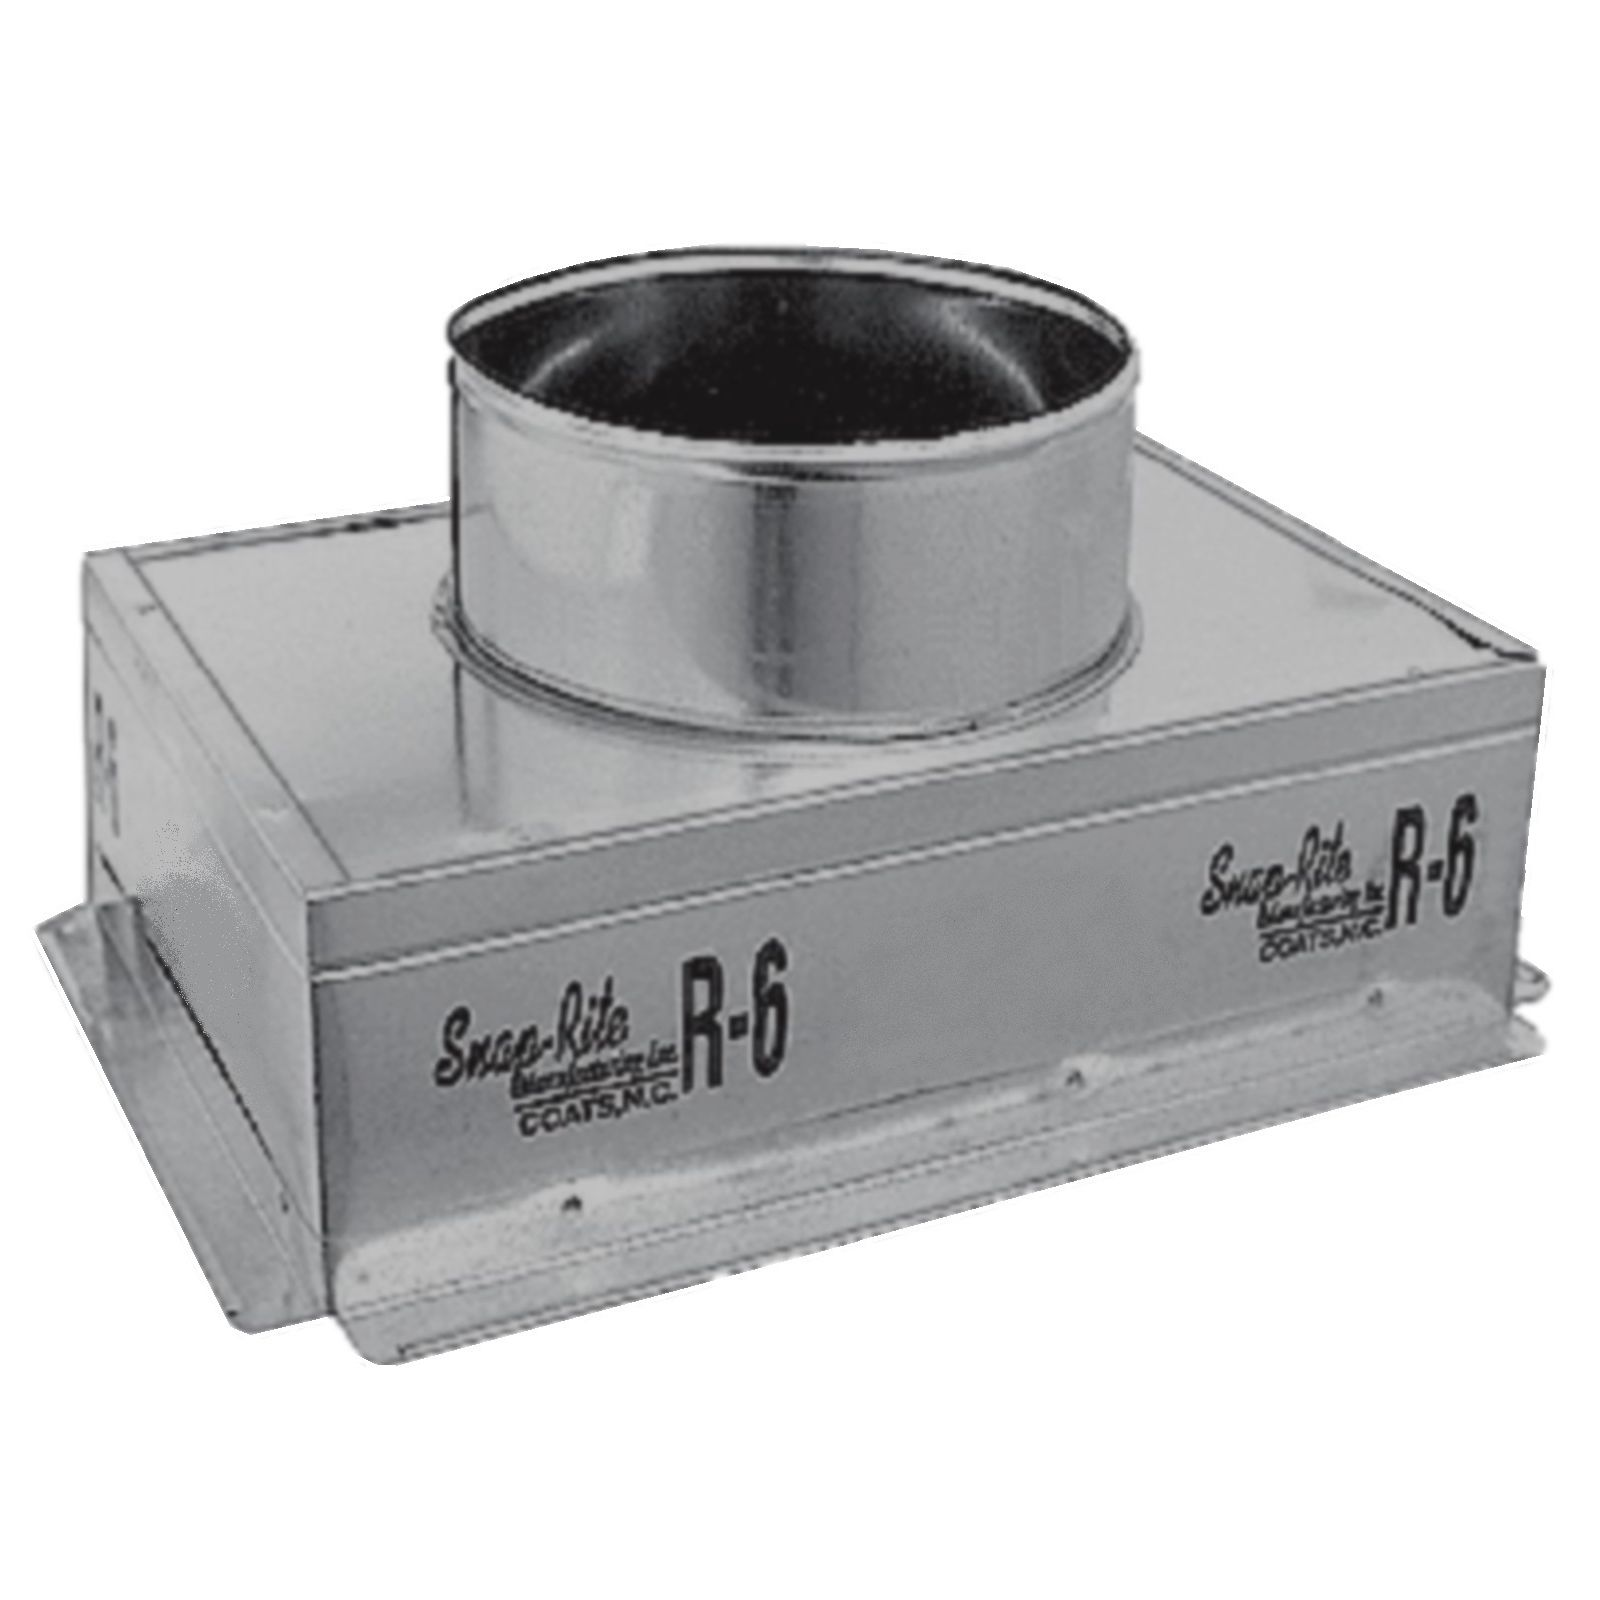 "Snap-Rite 10X06X053600FG - Metal Top Insulated Register Box With Flange & Gasket, 10"" x 06"" x 05"" - R6"